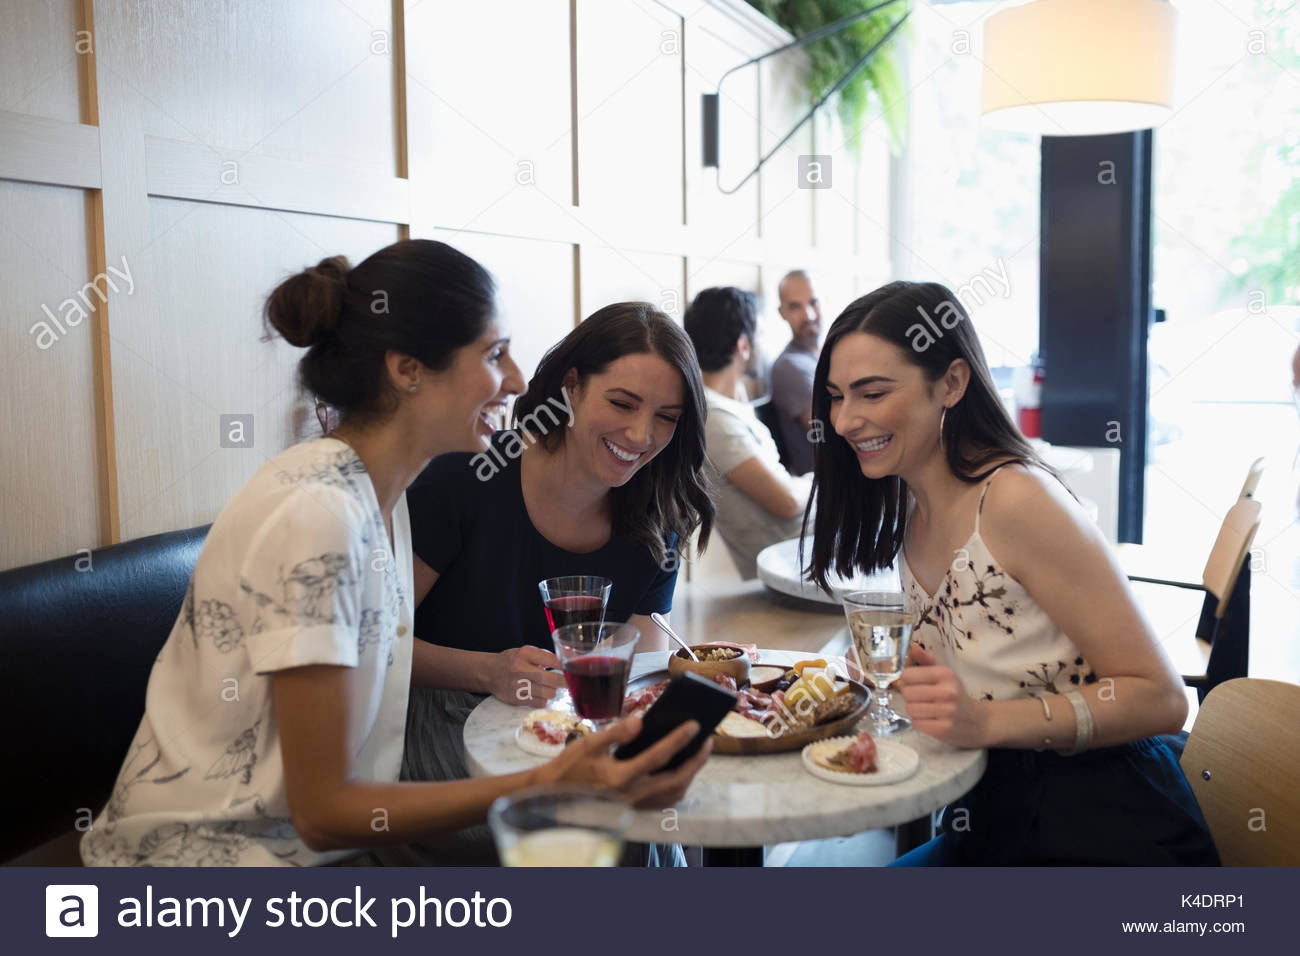 Smiling women friends drinking wine and using cell phone at cafe table Photo Stock